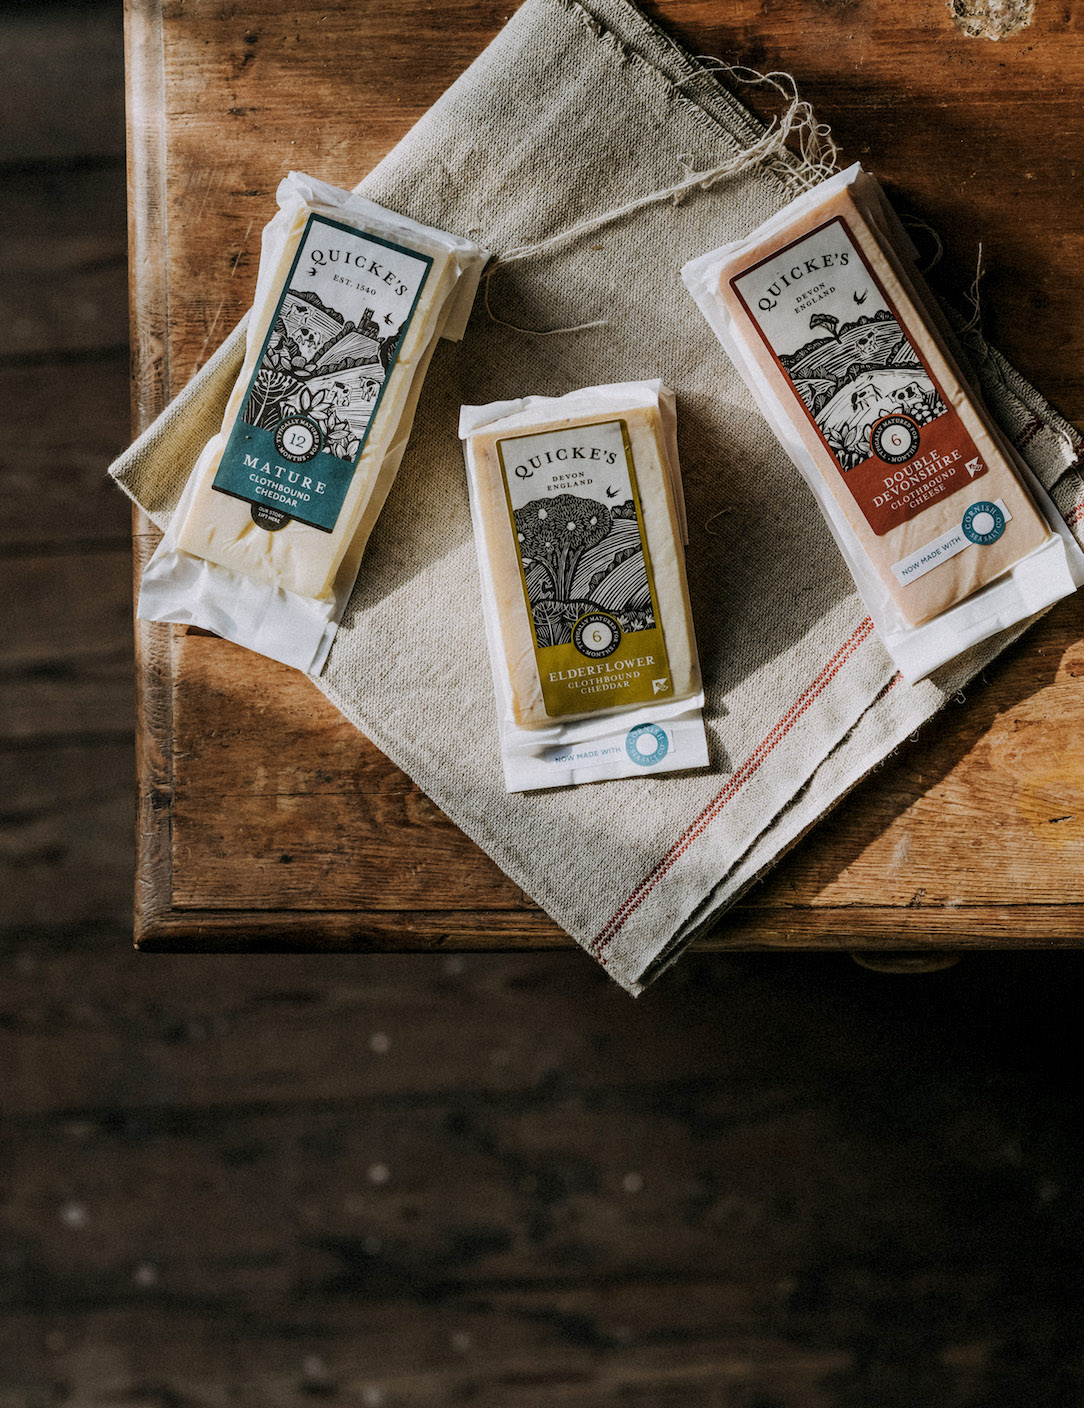 Altum Media marketing client, Quicke's cheese Exeter